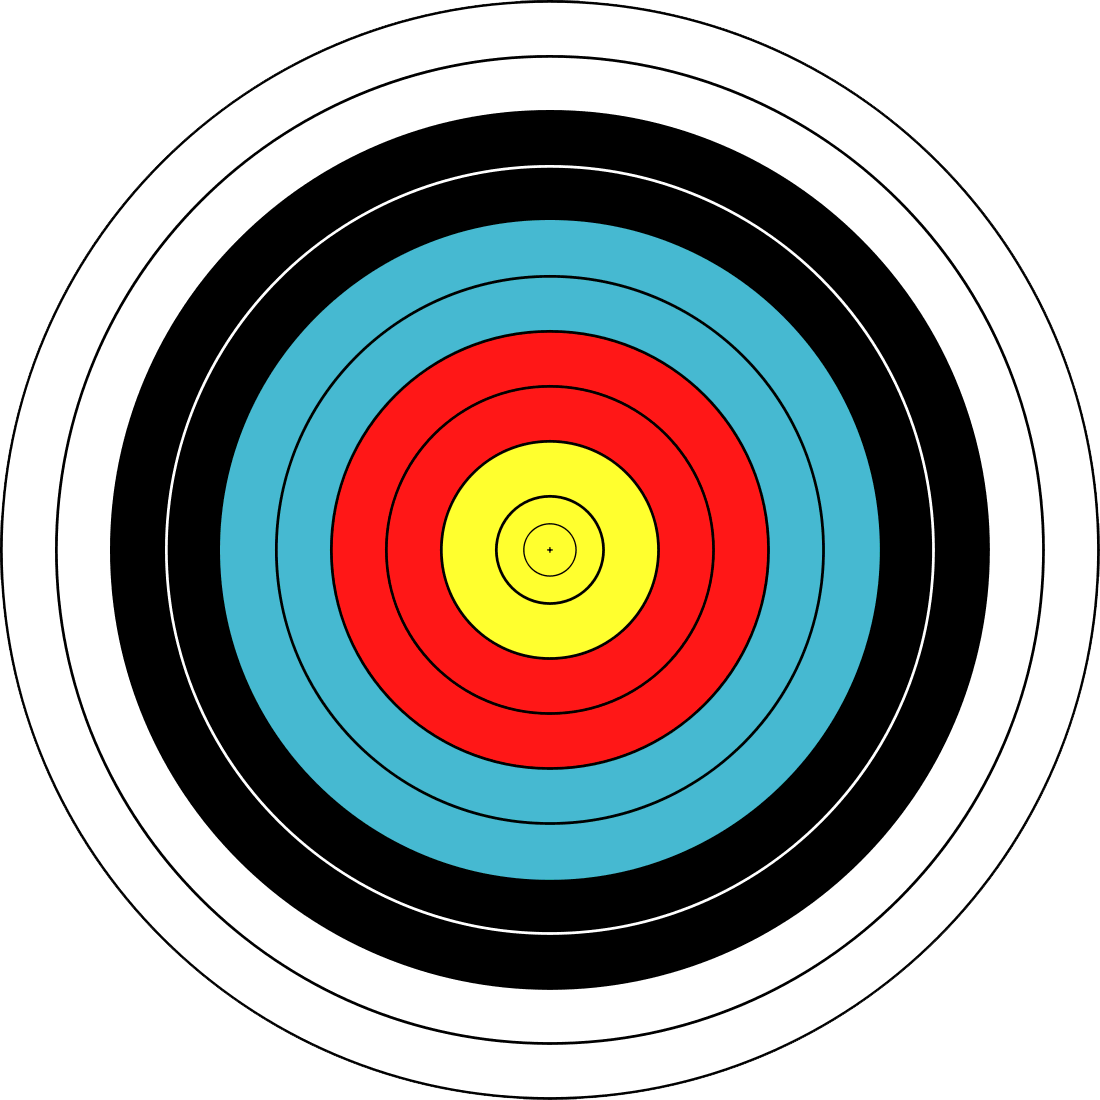 Jersey city official site. Archery clipart shooting range